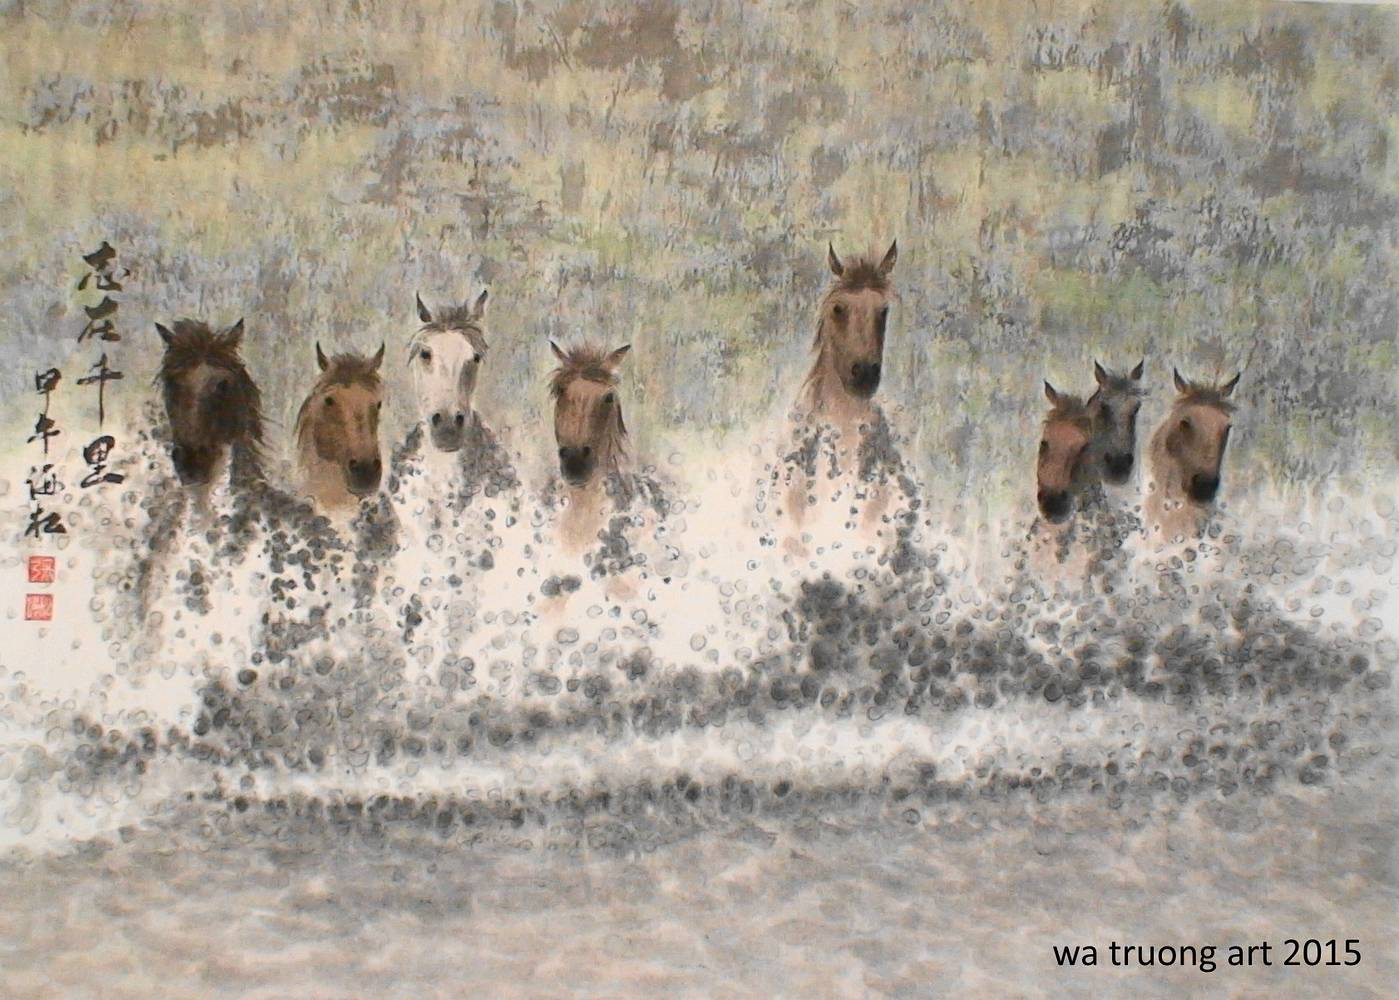 8 Horses by Dat Truong